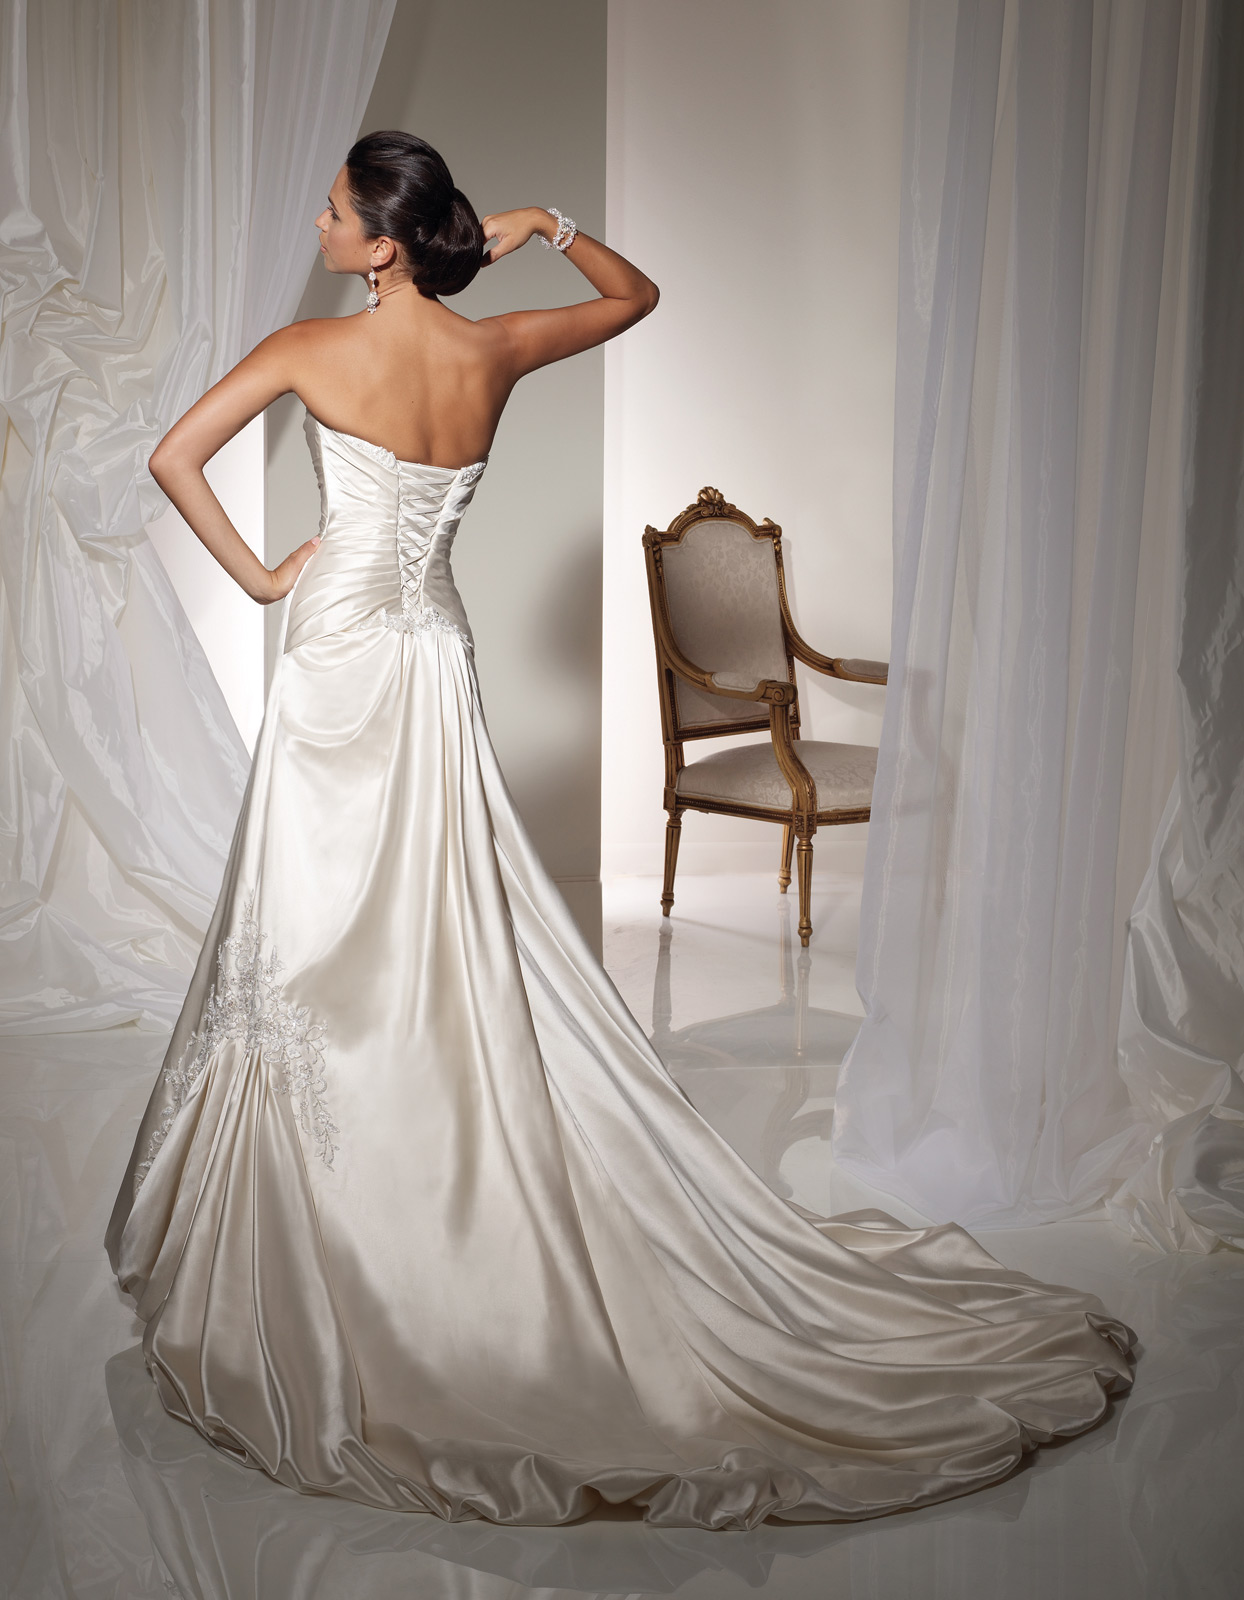 Sophie S Squishy Collection : Sophia Tolli 2011 Bridal Collection The FashionBrides